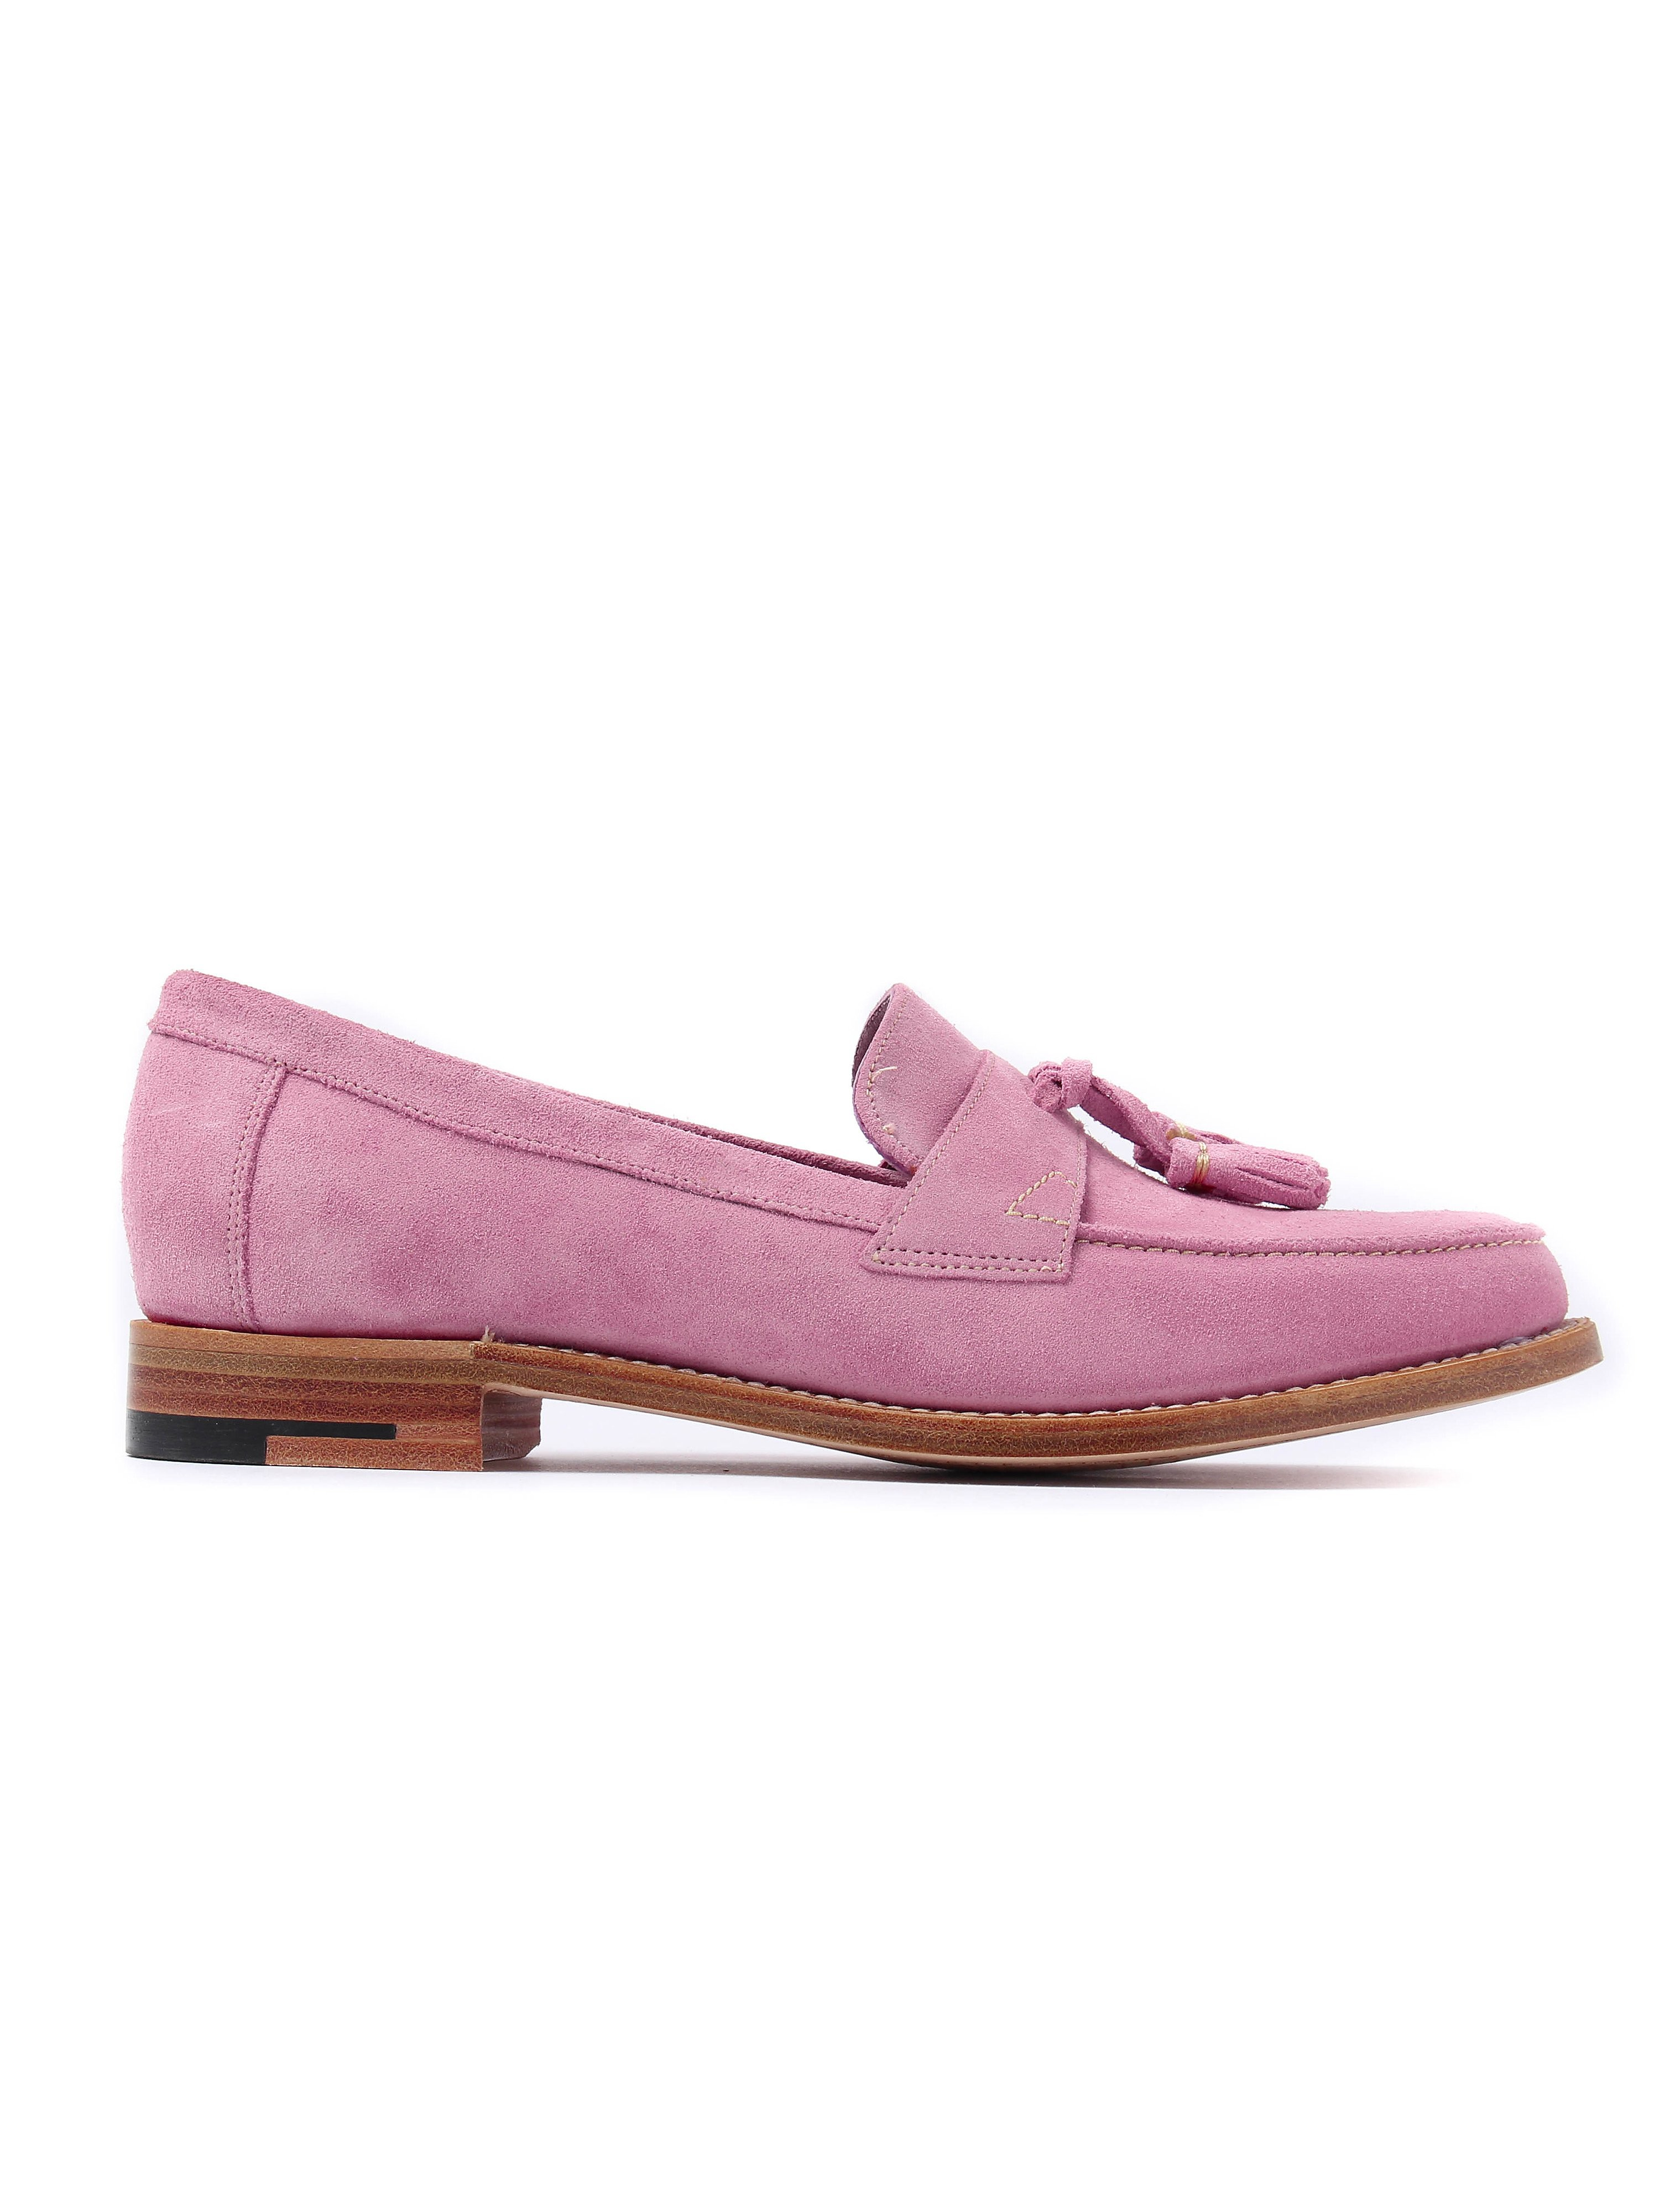 Barker Women's Imogen Classic Suede Loafers - Pink